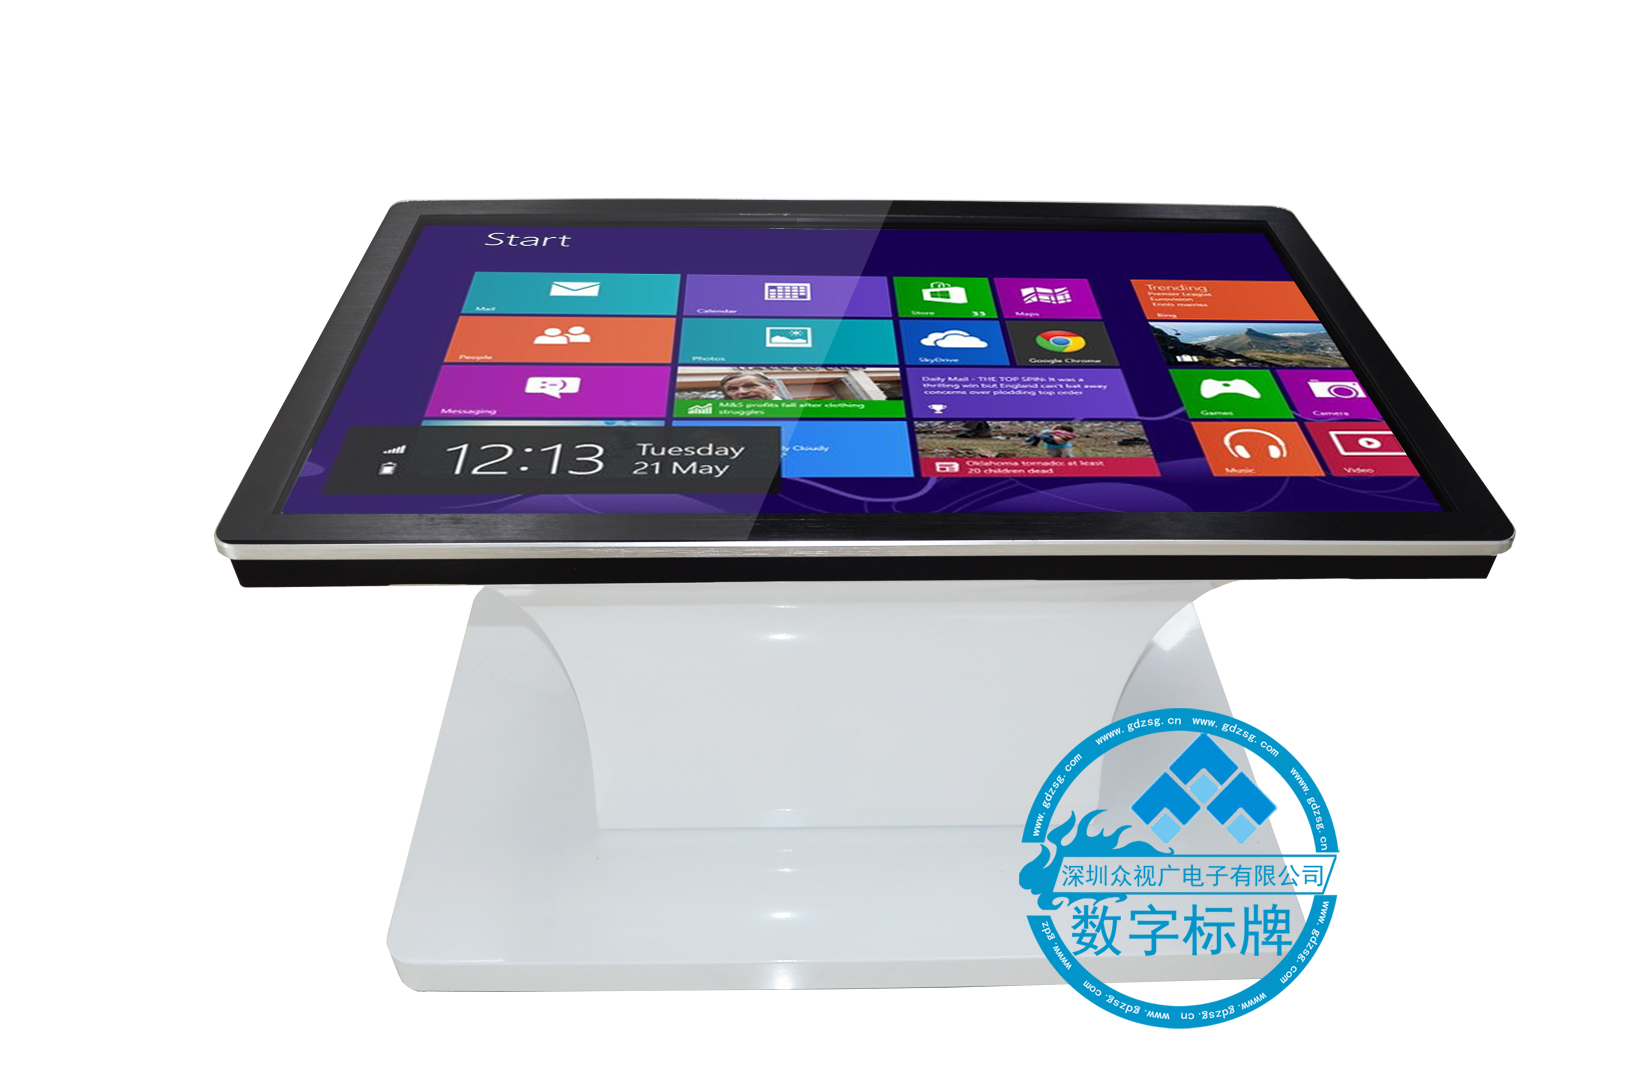 84inch information stand interactive touch screen PC Kiosk